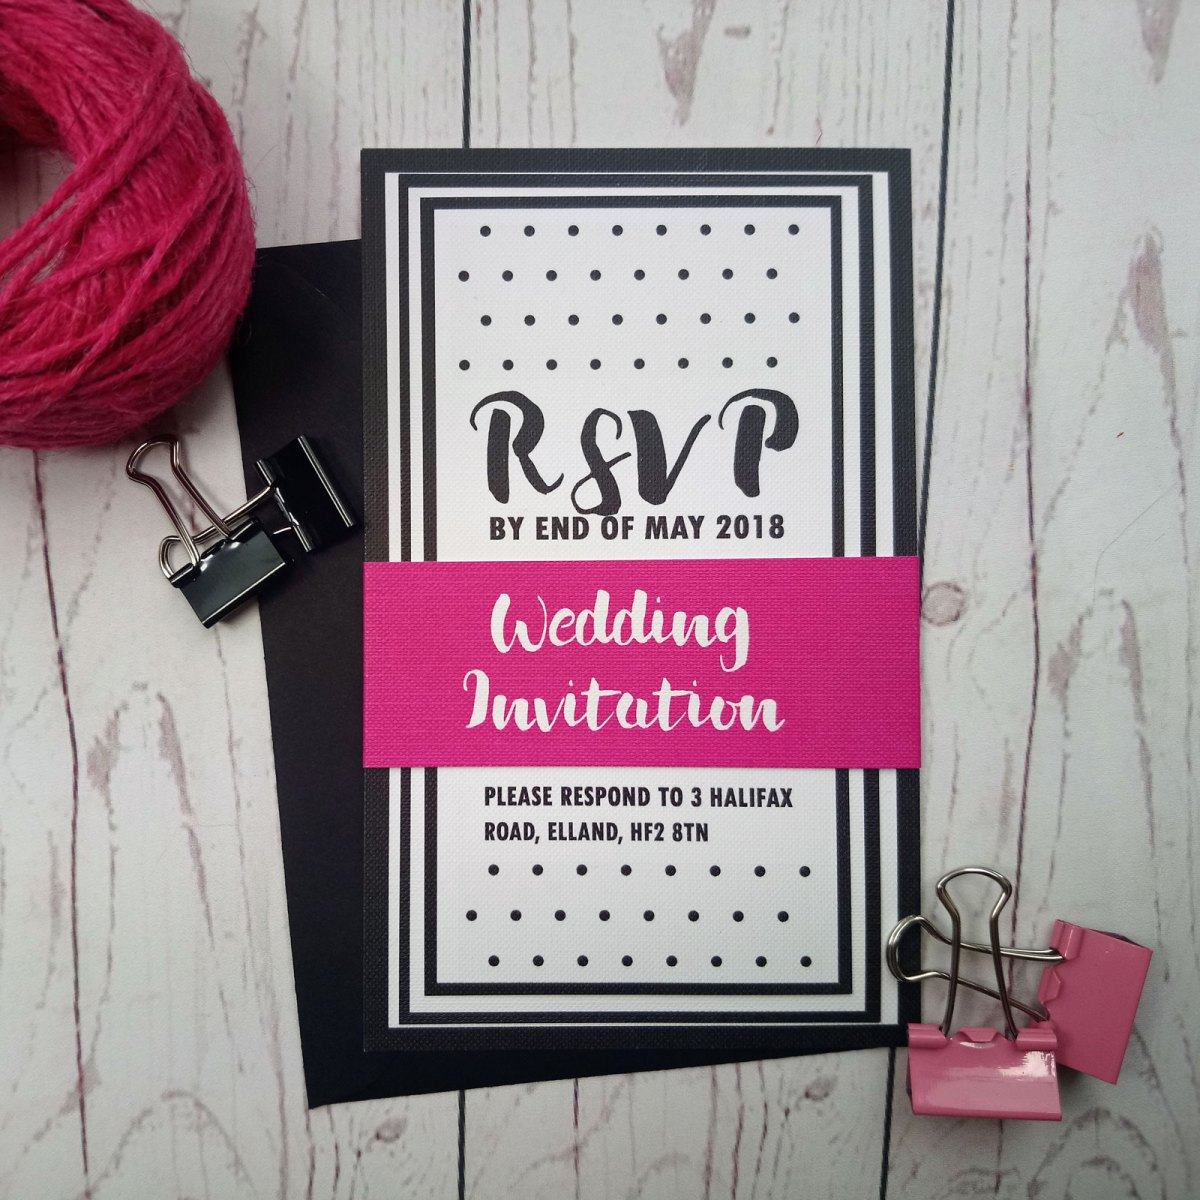 Polka Dot Wedding Invitation Set with pink banner.